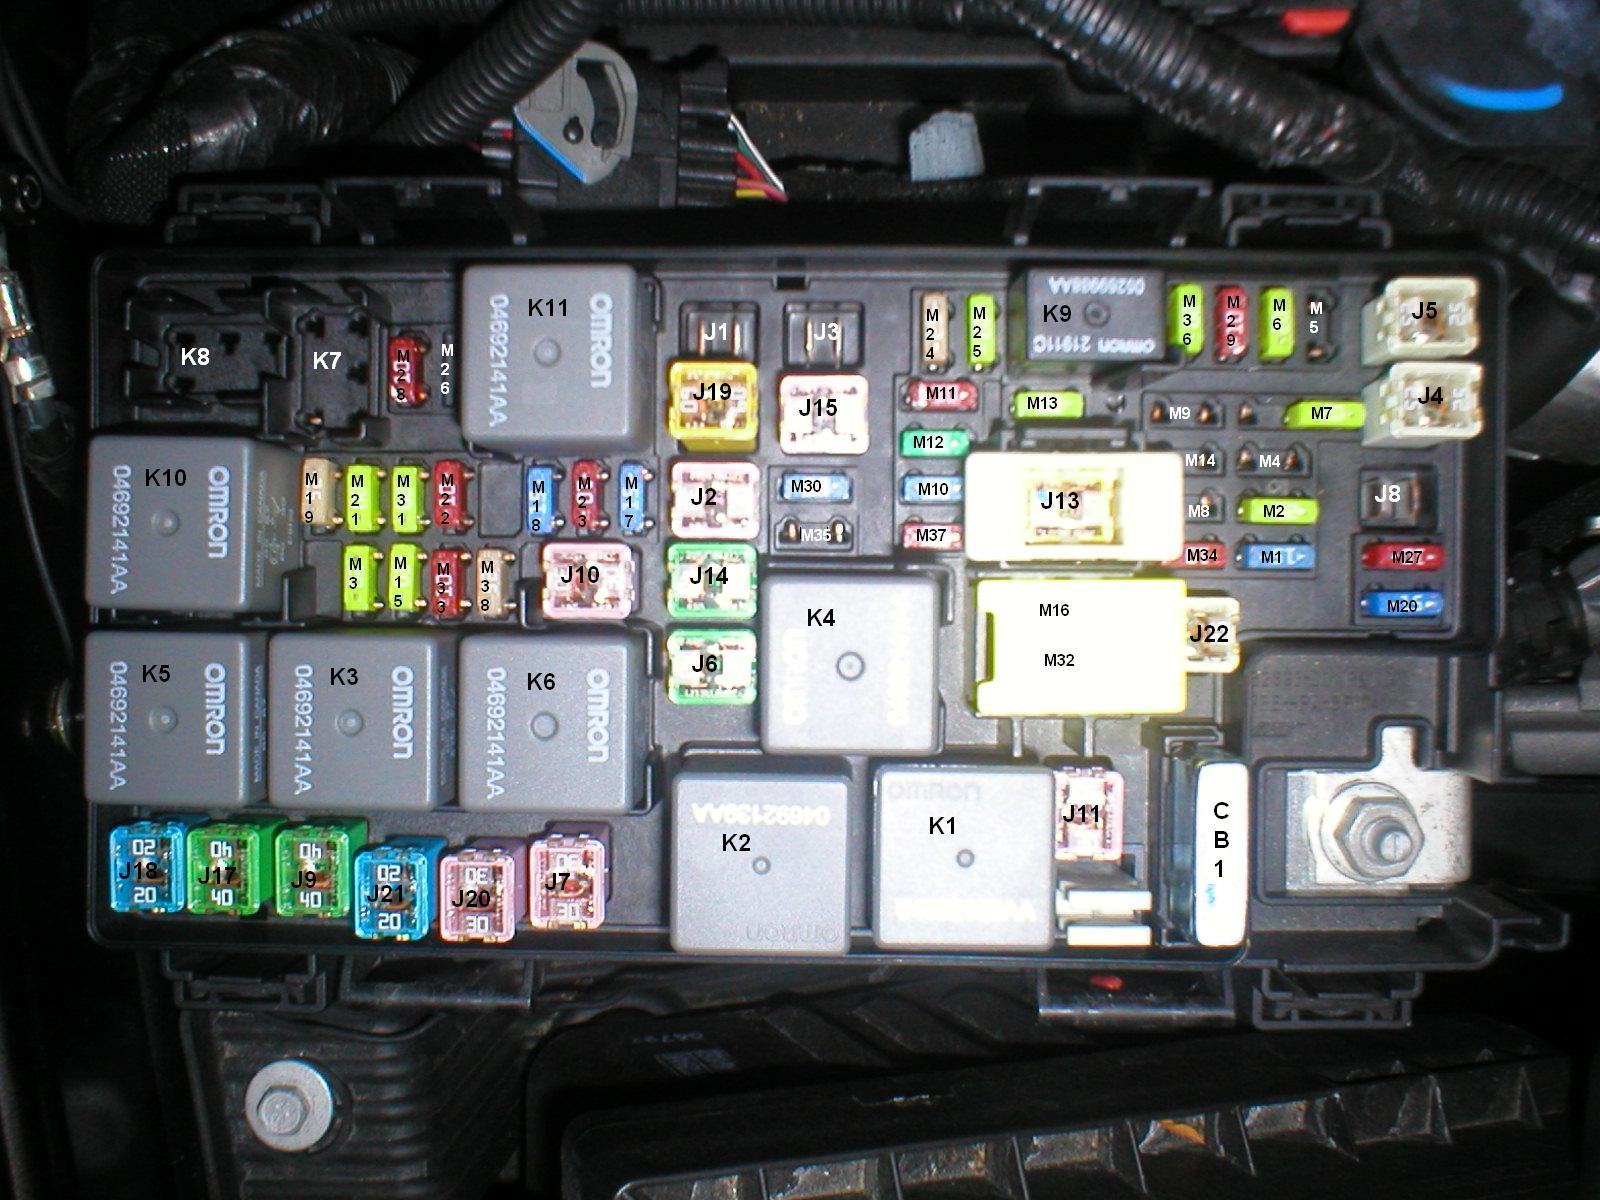 hight resolution of jeep jk fuse box map layout diagram jeepforum comjeep fuse box cover 5